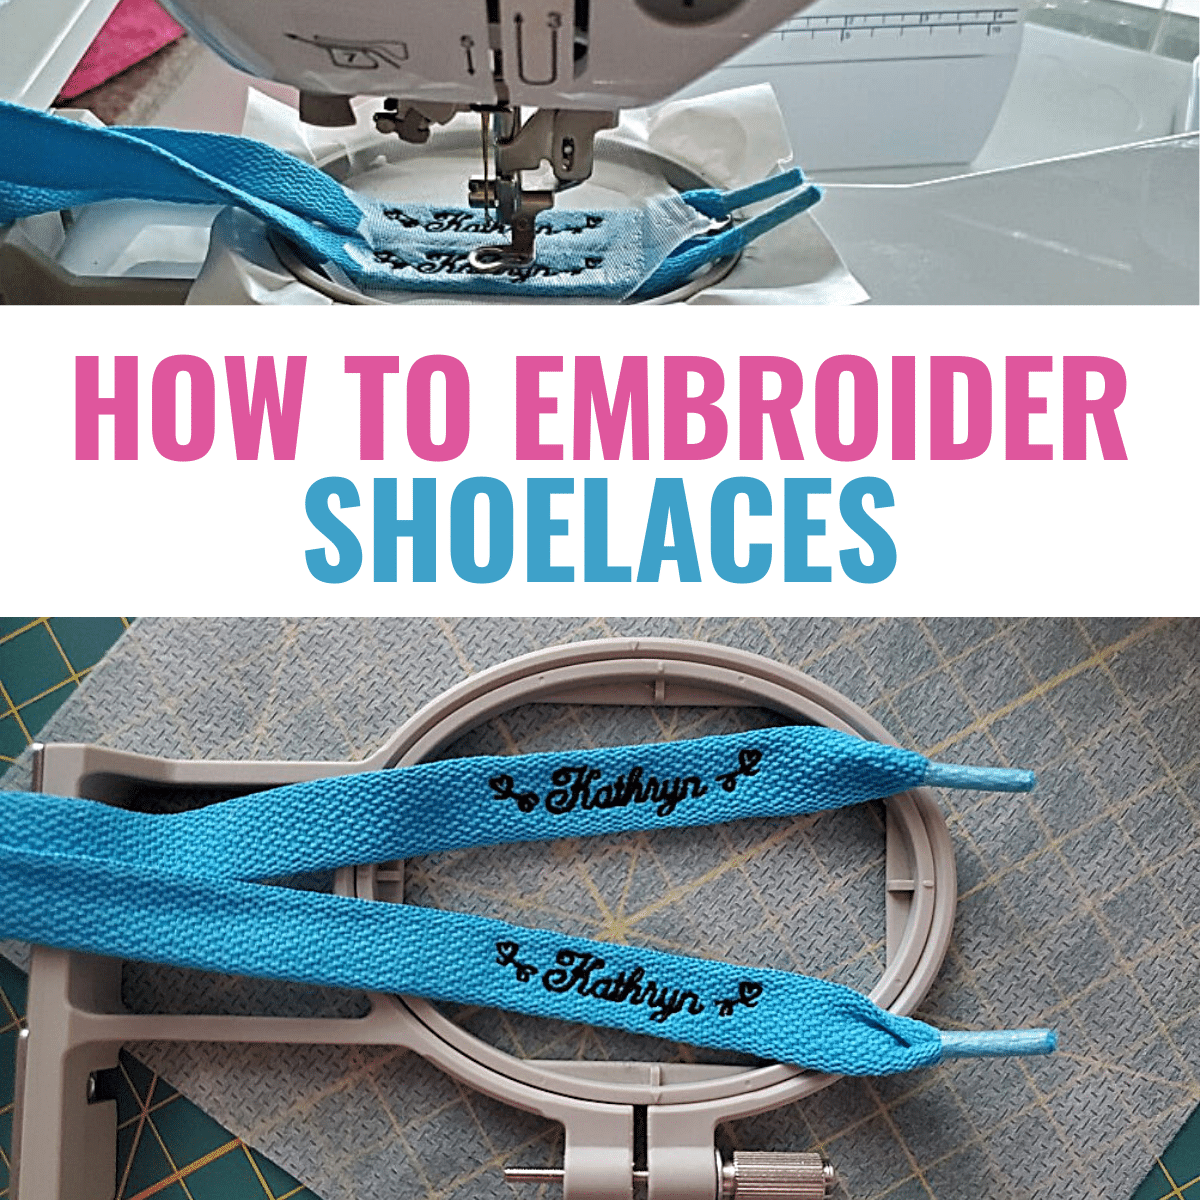 How to Make Custom Shoelaces with an Embroidery Machine